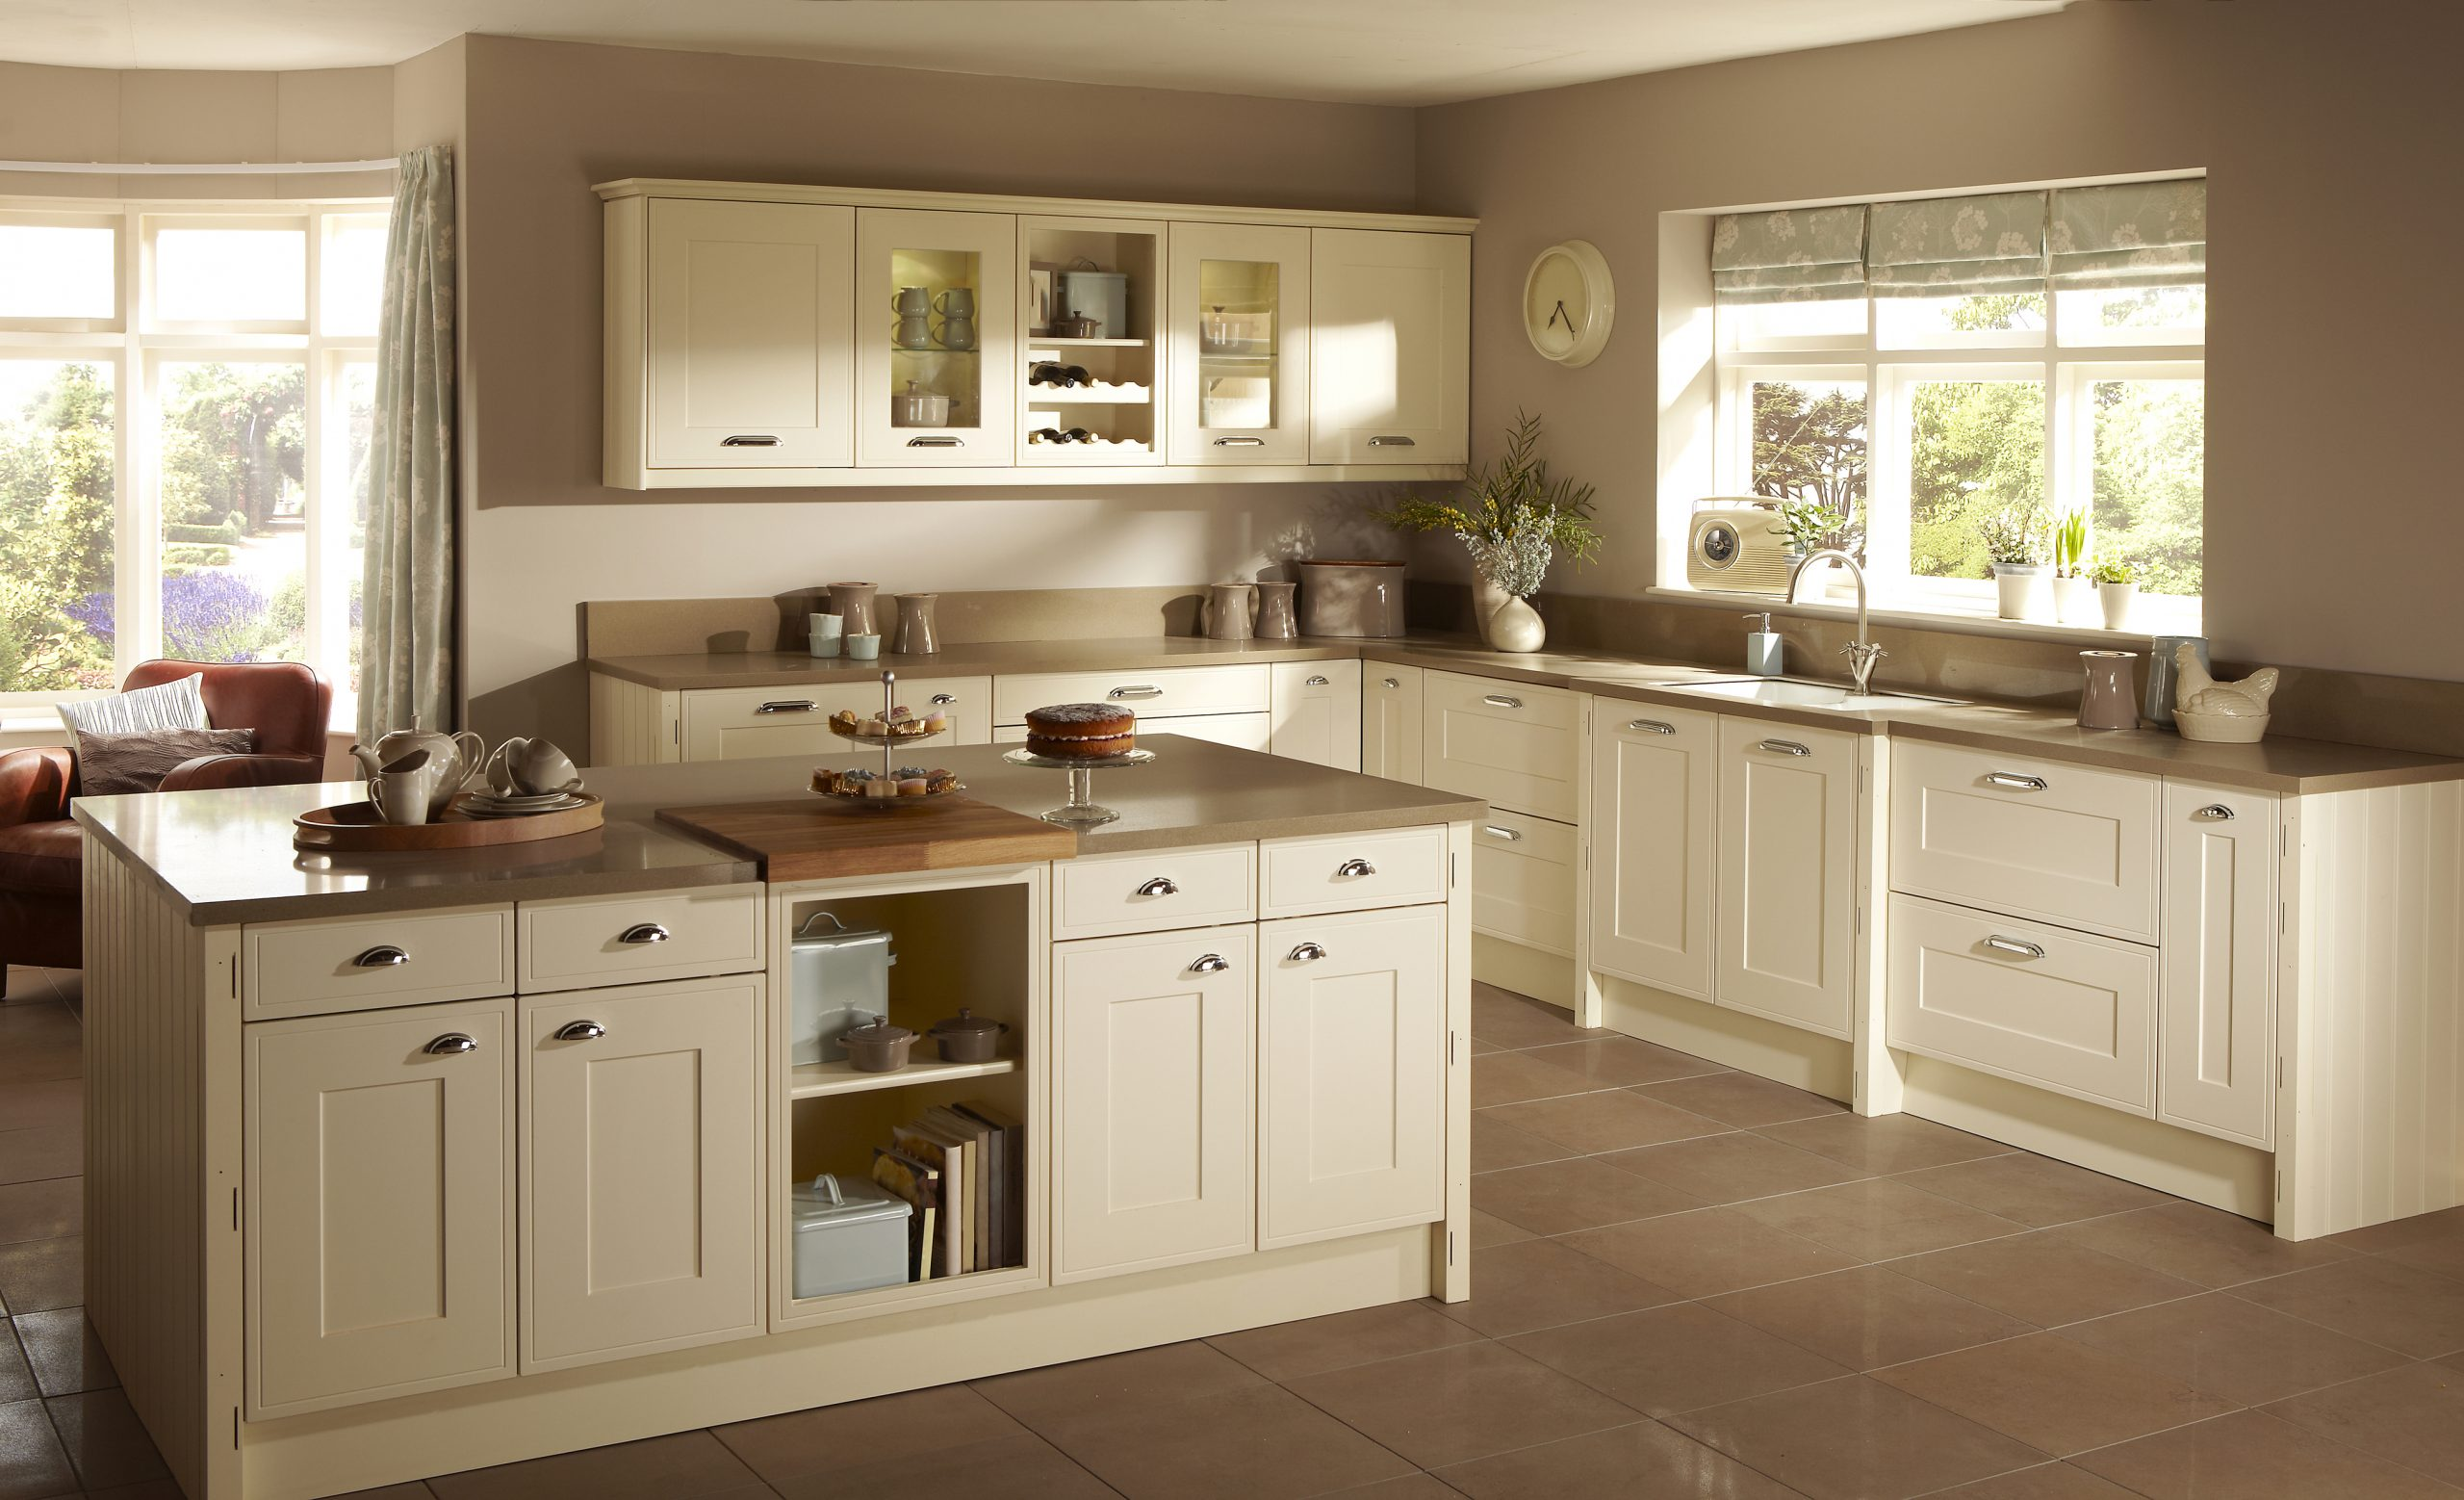 Image of a traditional large kitchen Shaker style interior with kitchen accessories with sun shining through the windows